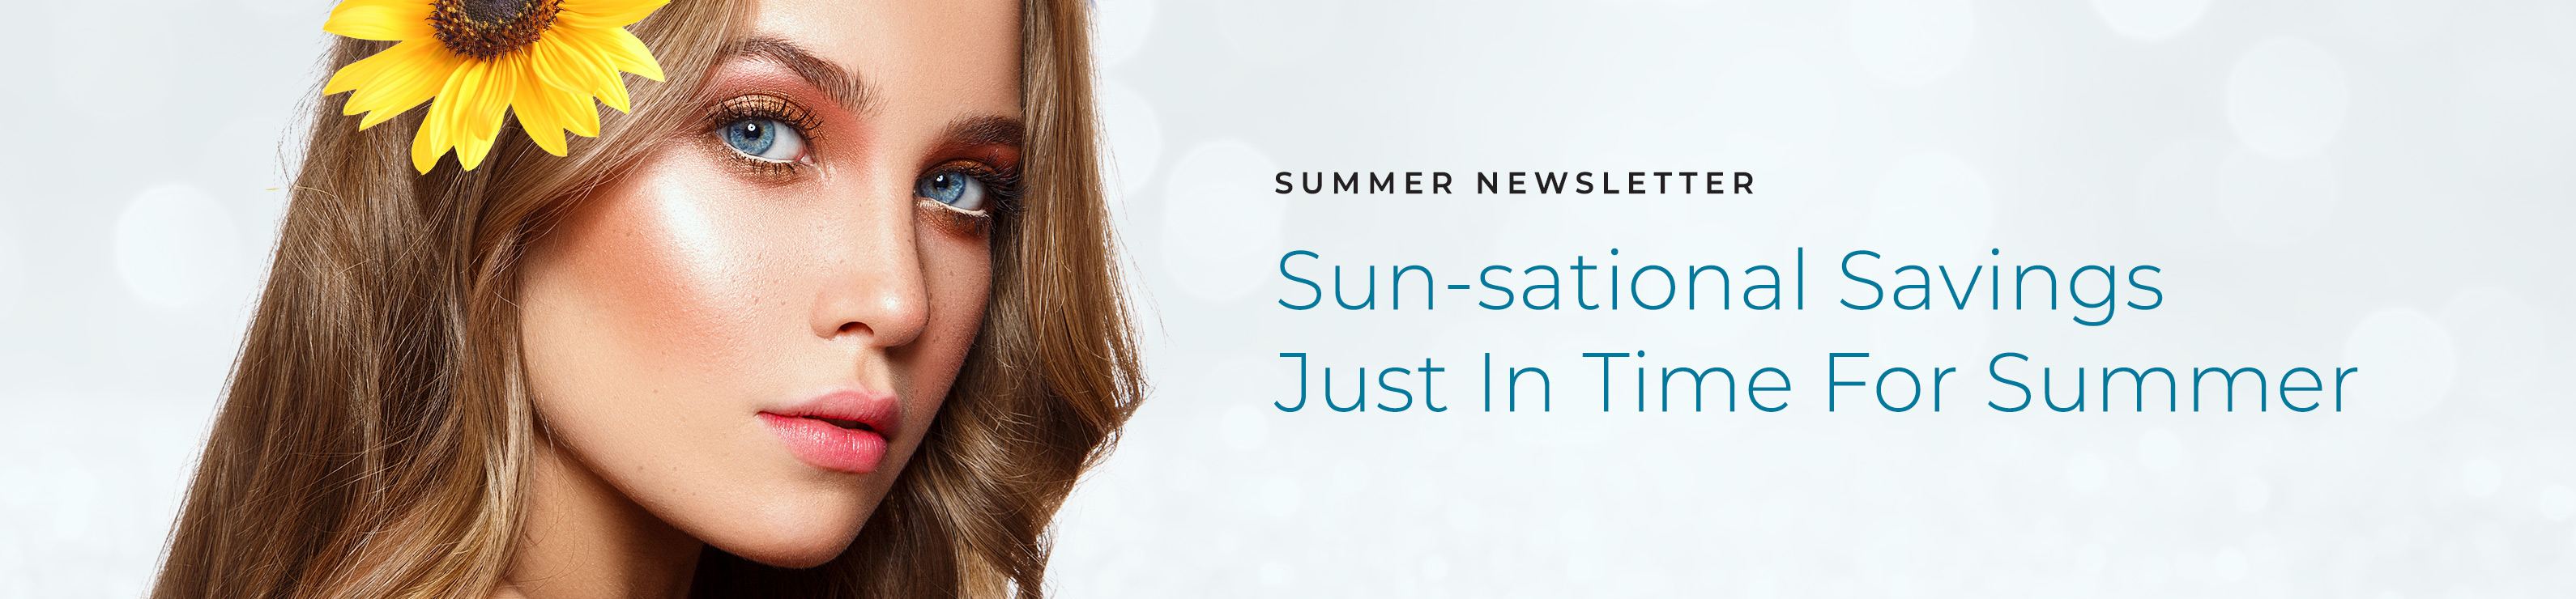 Summer Newsletter – Sun-sational Savings Just In Time For Summer